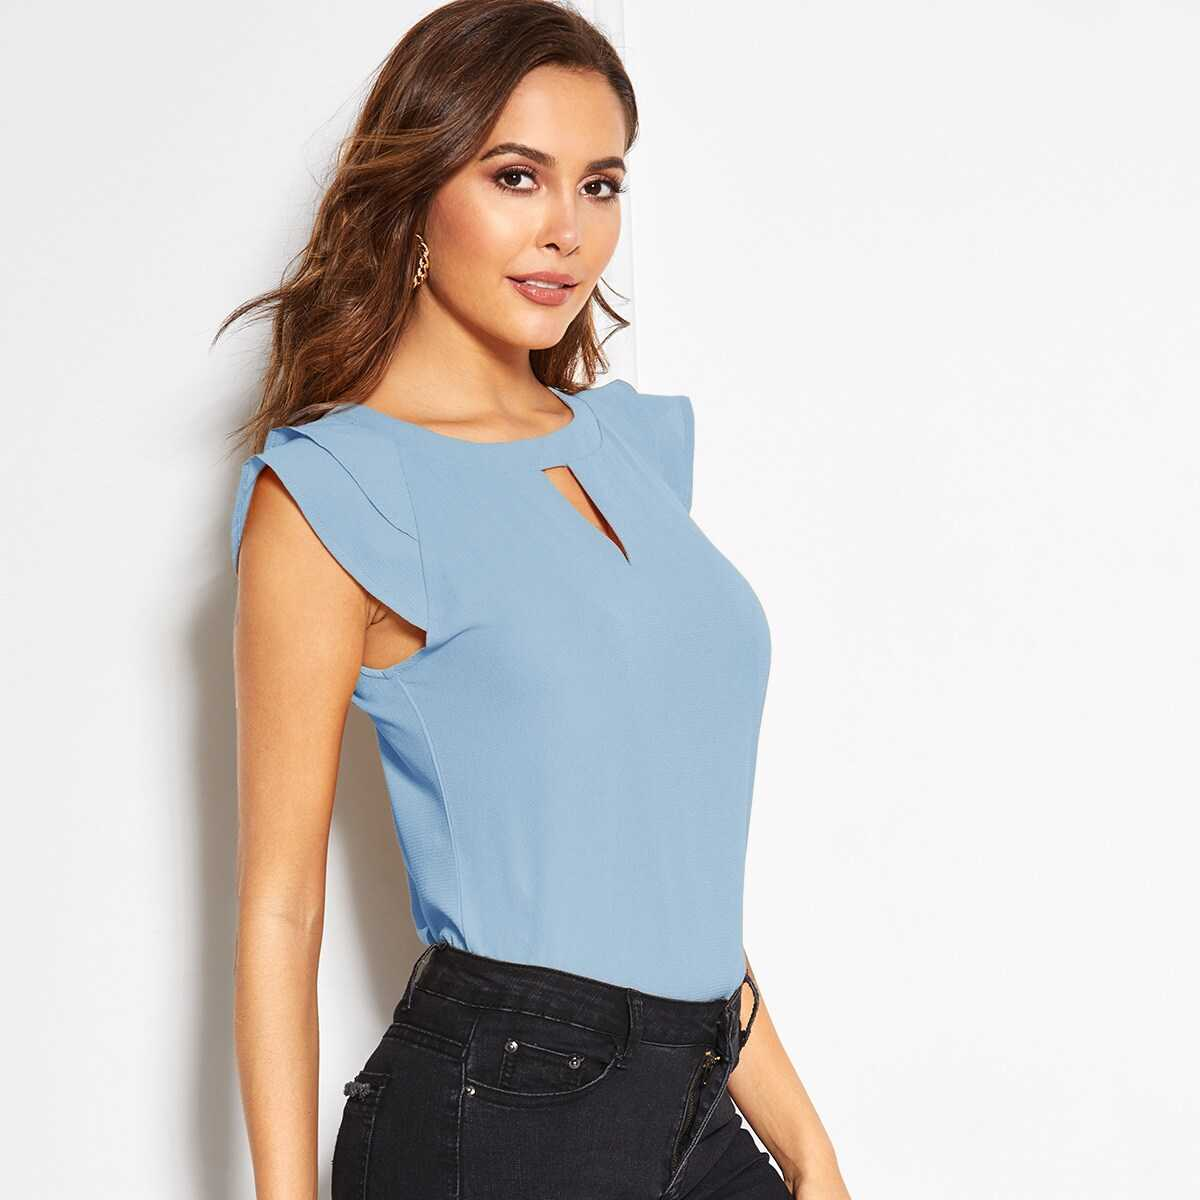 V-cut Neck Layer Cuff Keyhole Back Blouse - Shein - GOOFASH